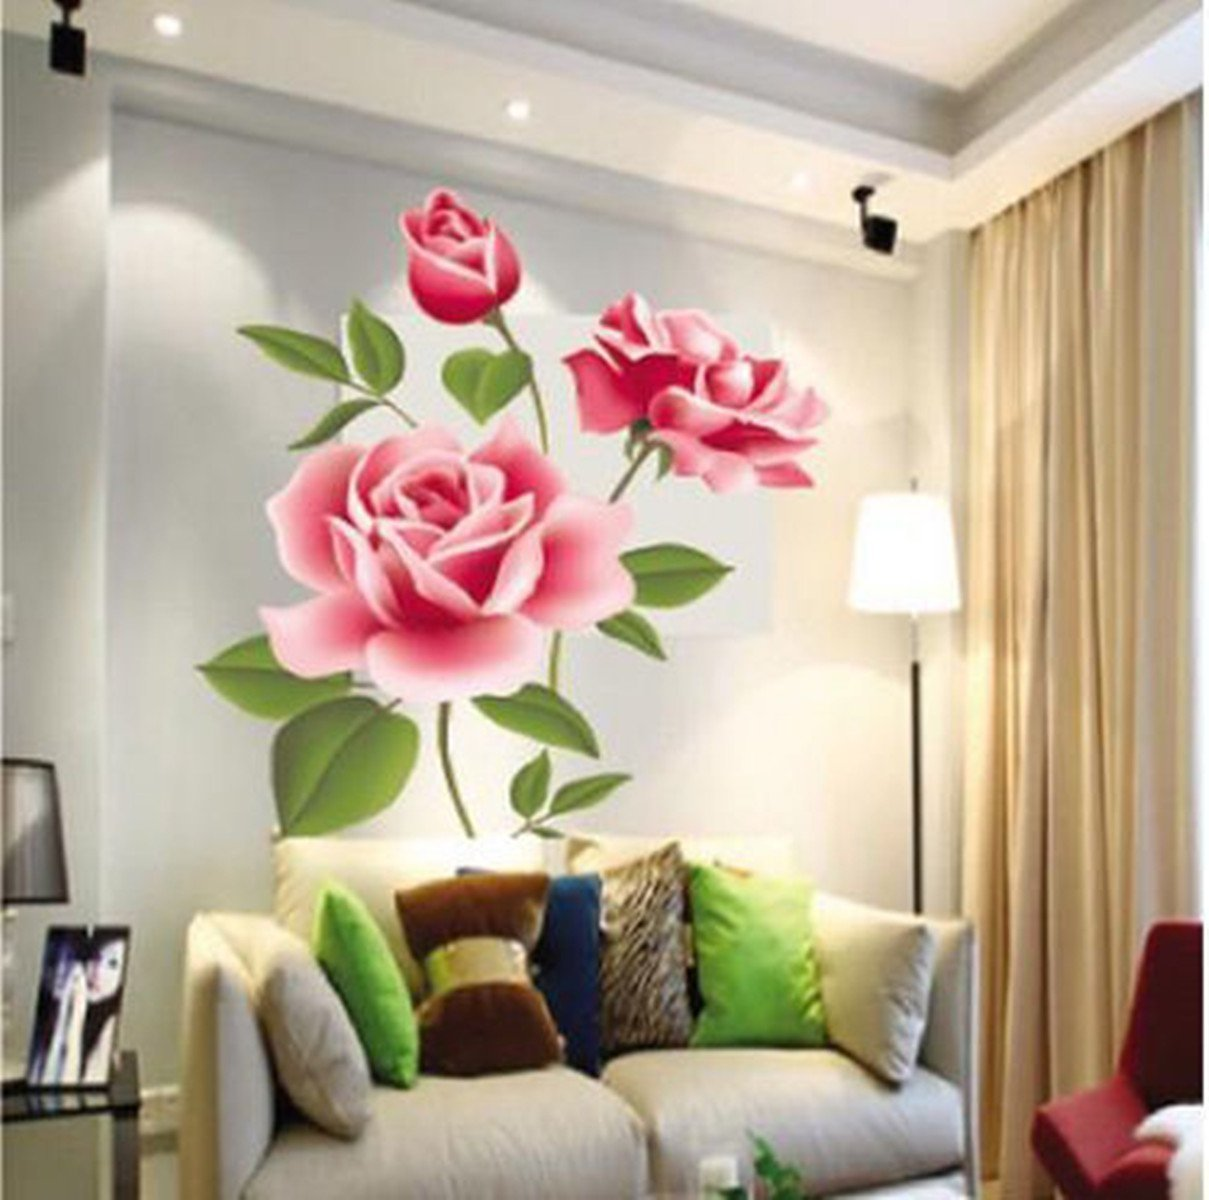 Rose Flower Vinyl Home Decor Wall Art Decal Sticker By Homking:  Amazon.co.uk: DIY U0026 Tools